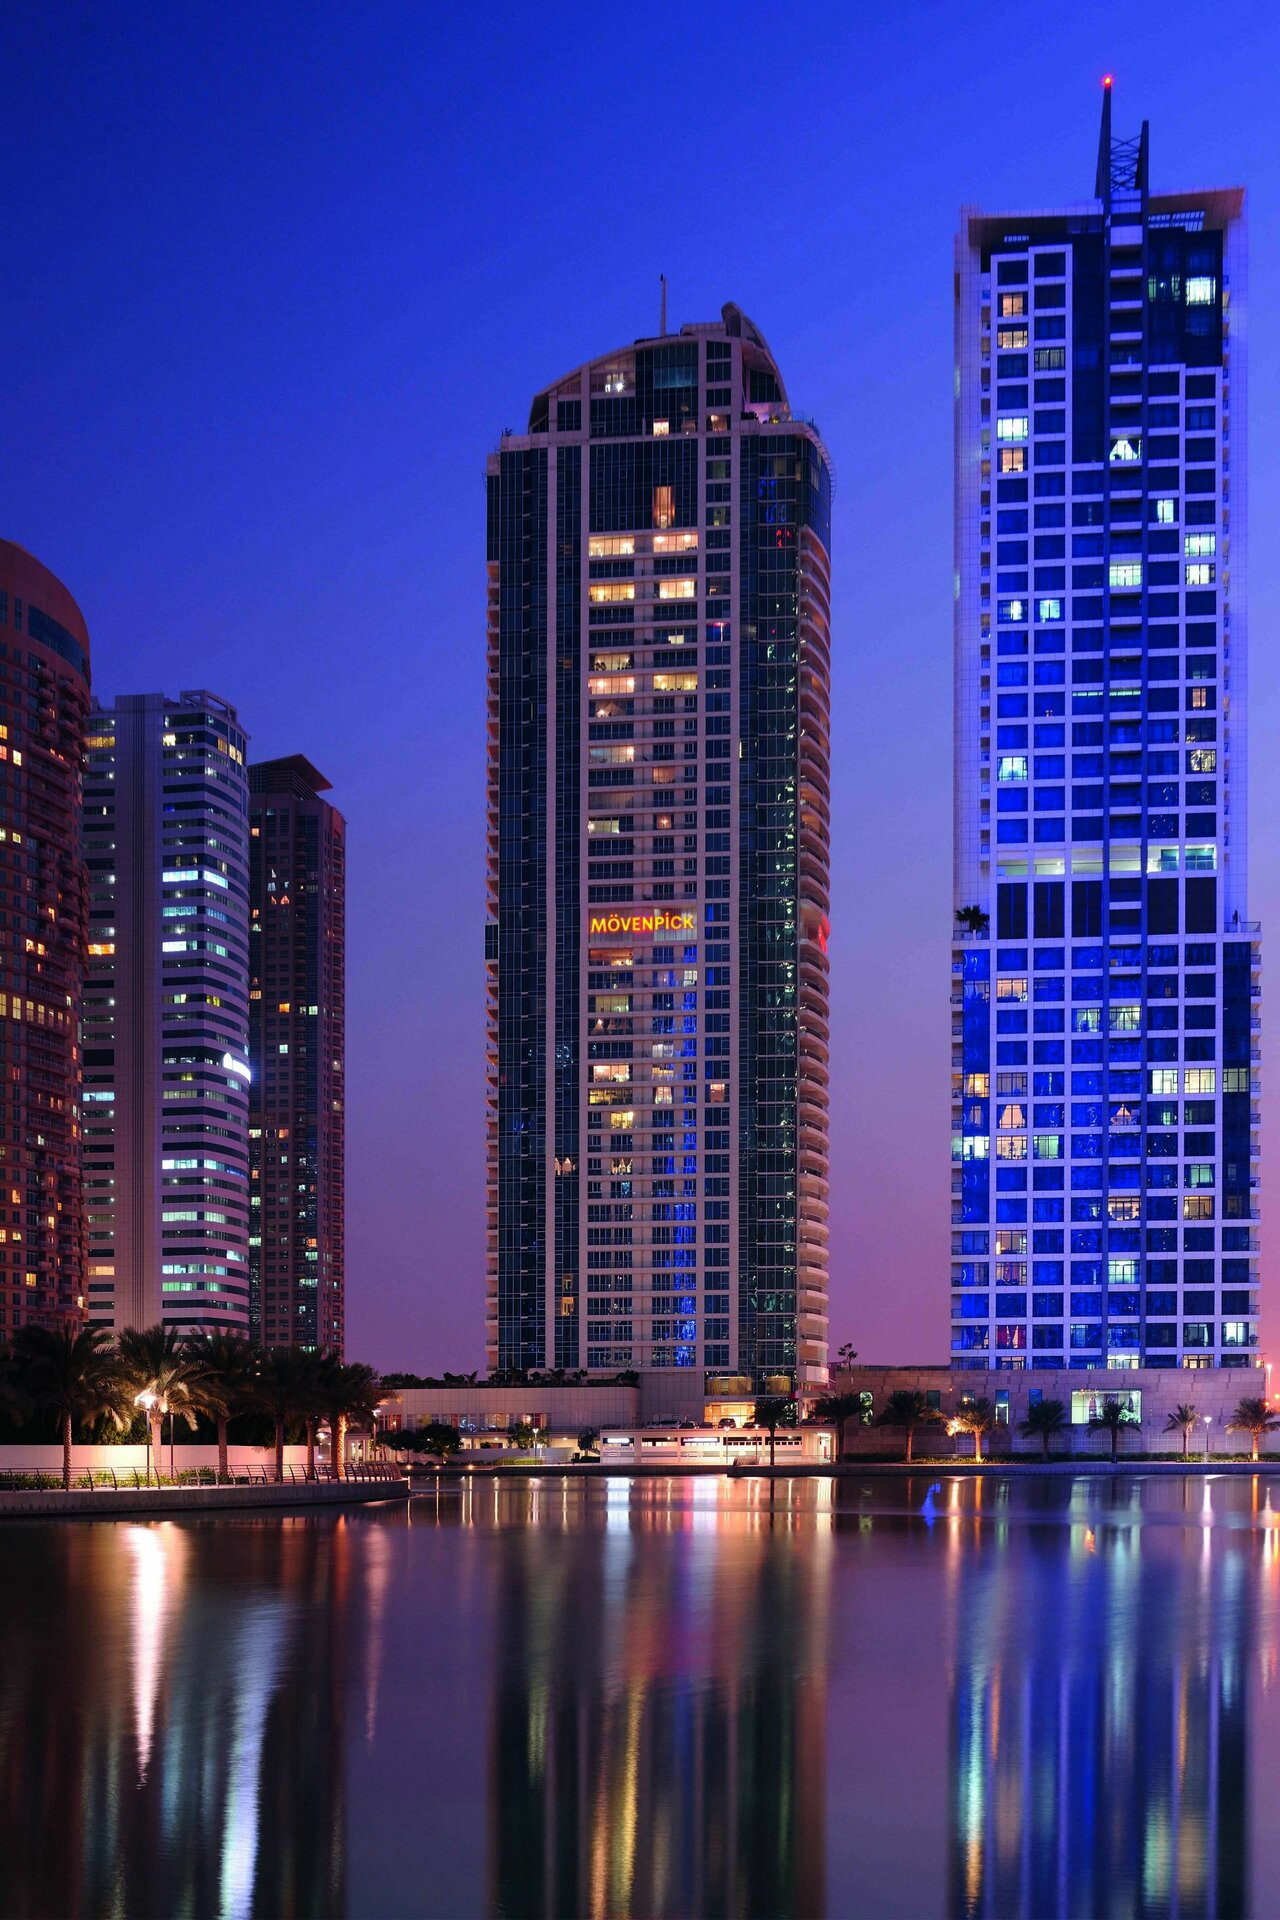 Moevenpick Jumeirah Lakes Towers